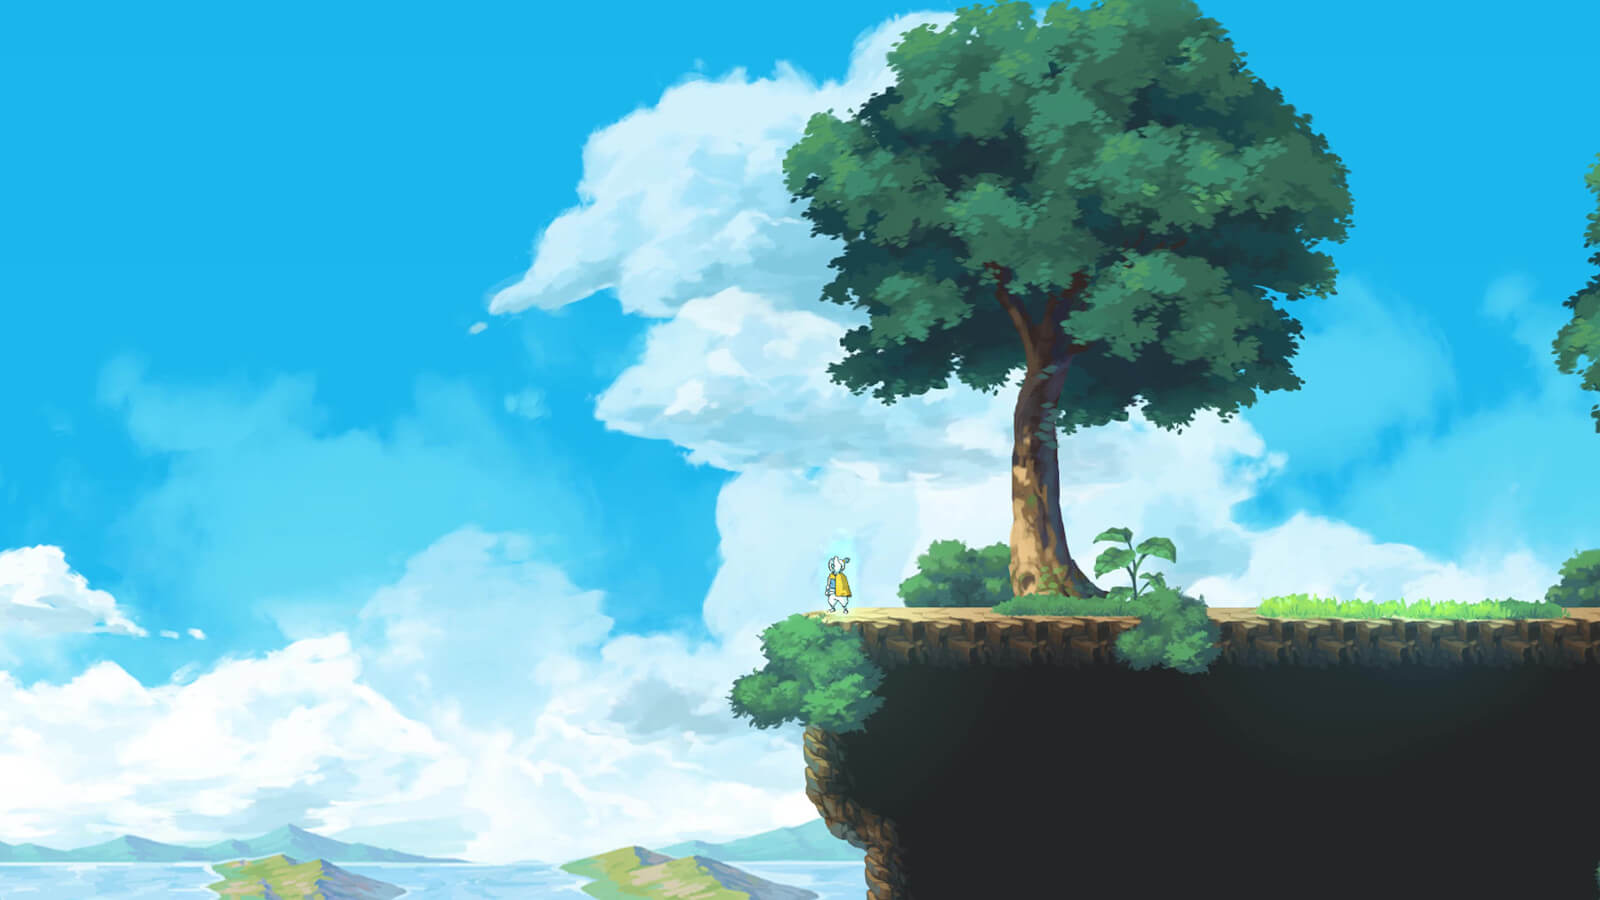 Player character stands at the edge of a cliff